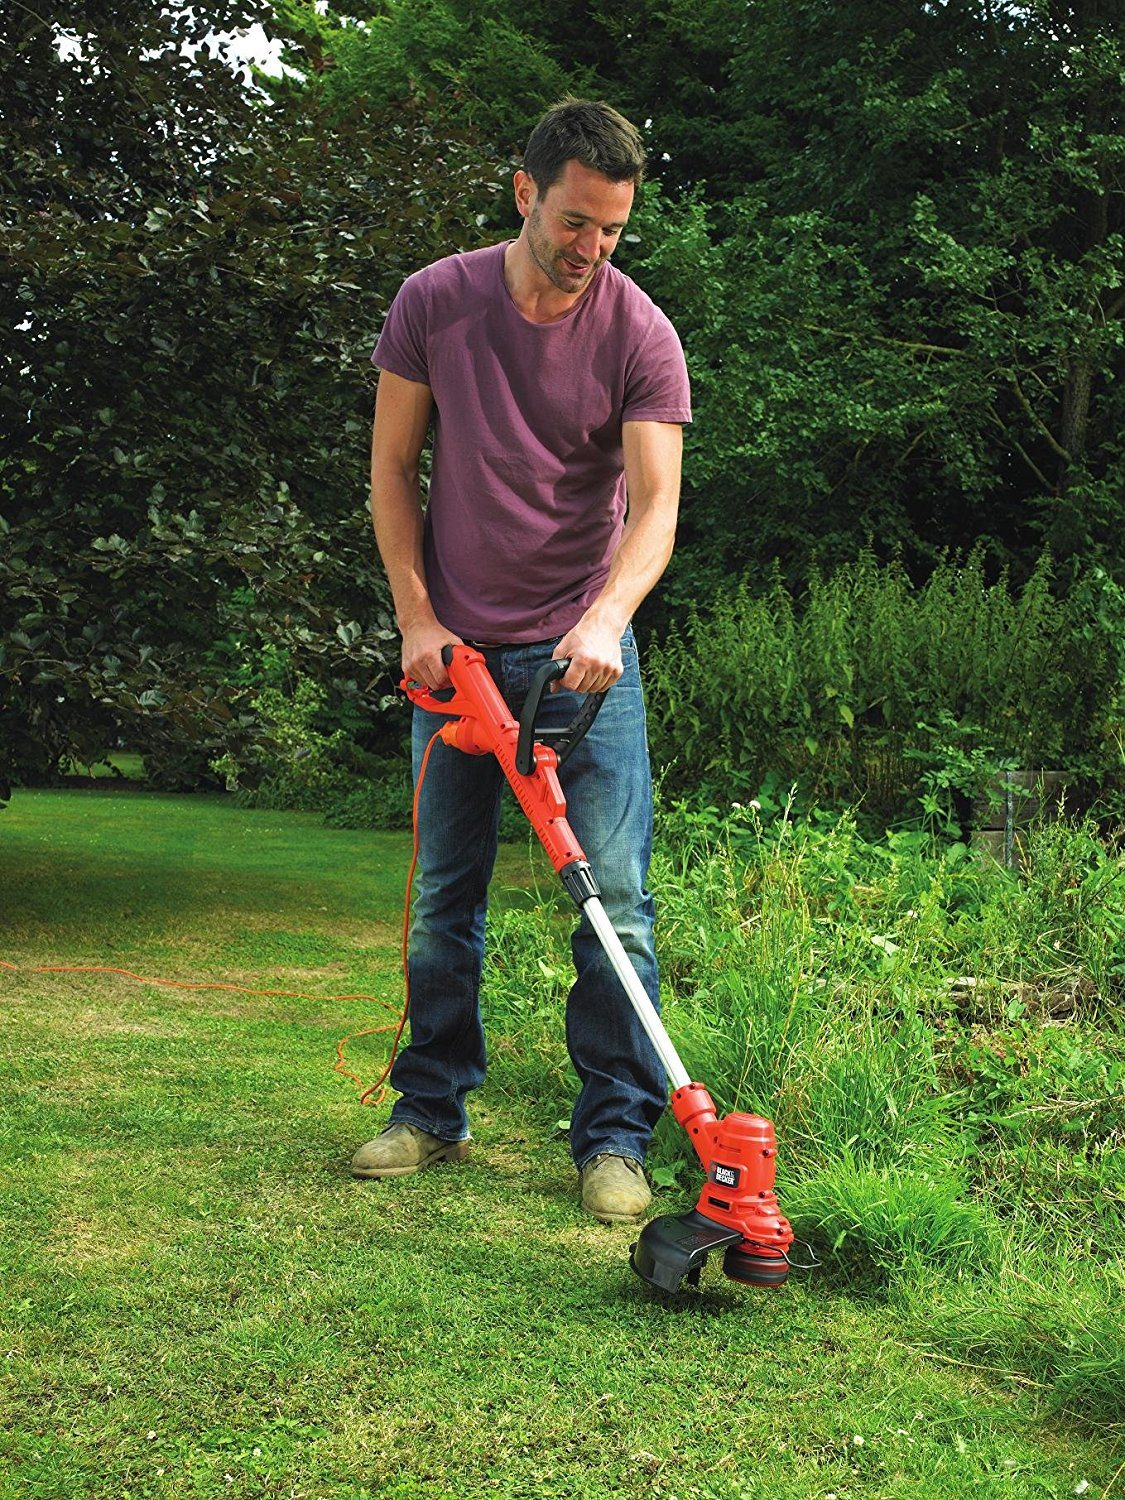 No 4 rated corded grass strimmer